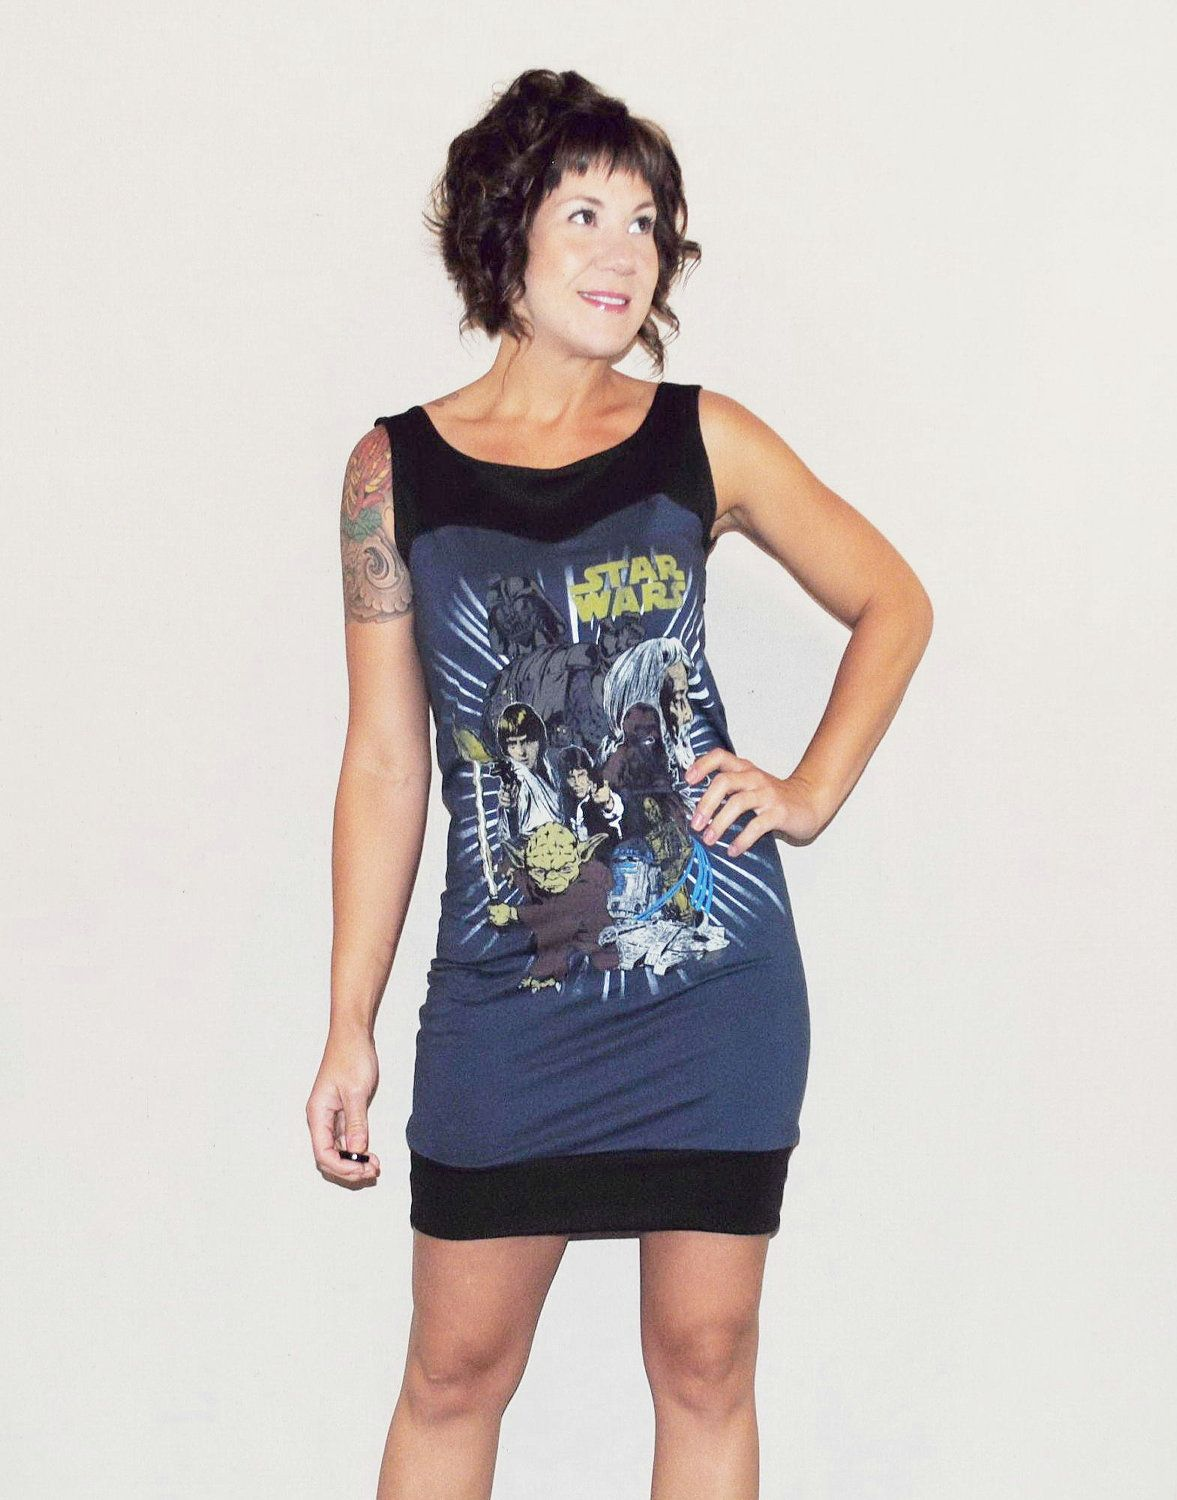 Black t shirt dress etsy - Star Wars Dress Reconstructed Upcycled Blue And Black T Shirt Made To Order